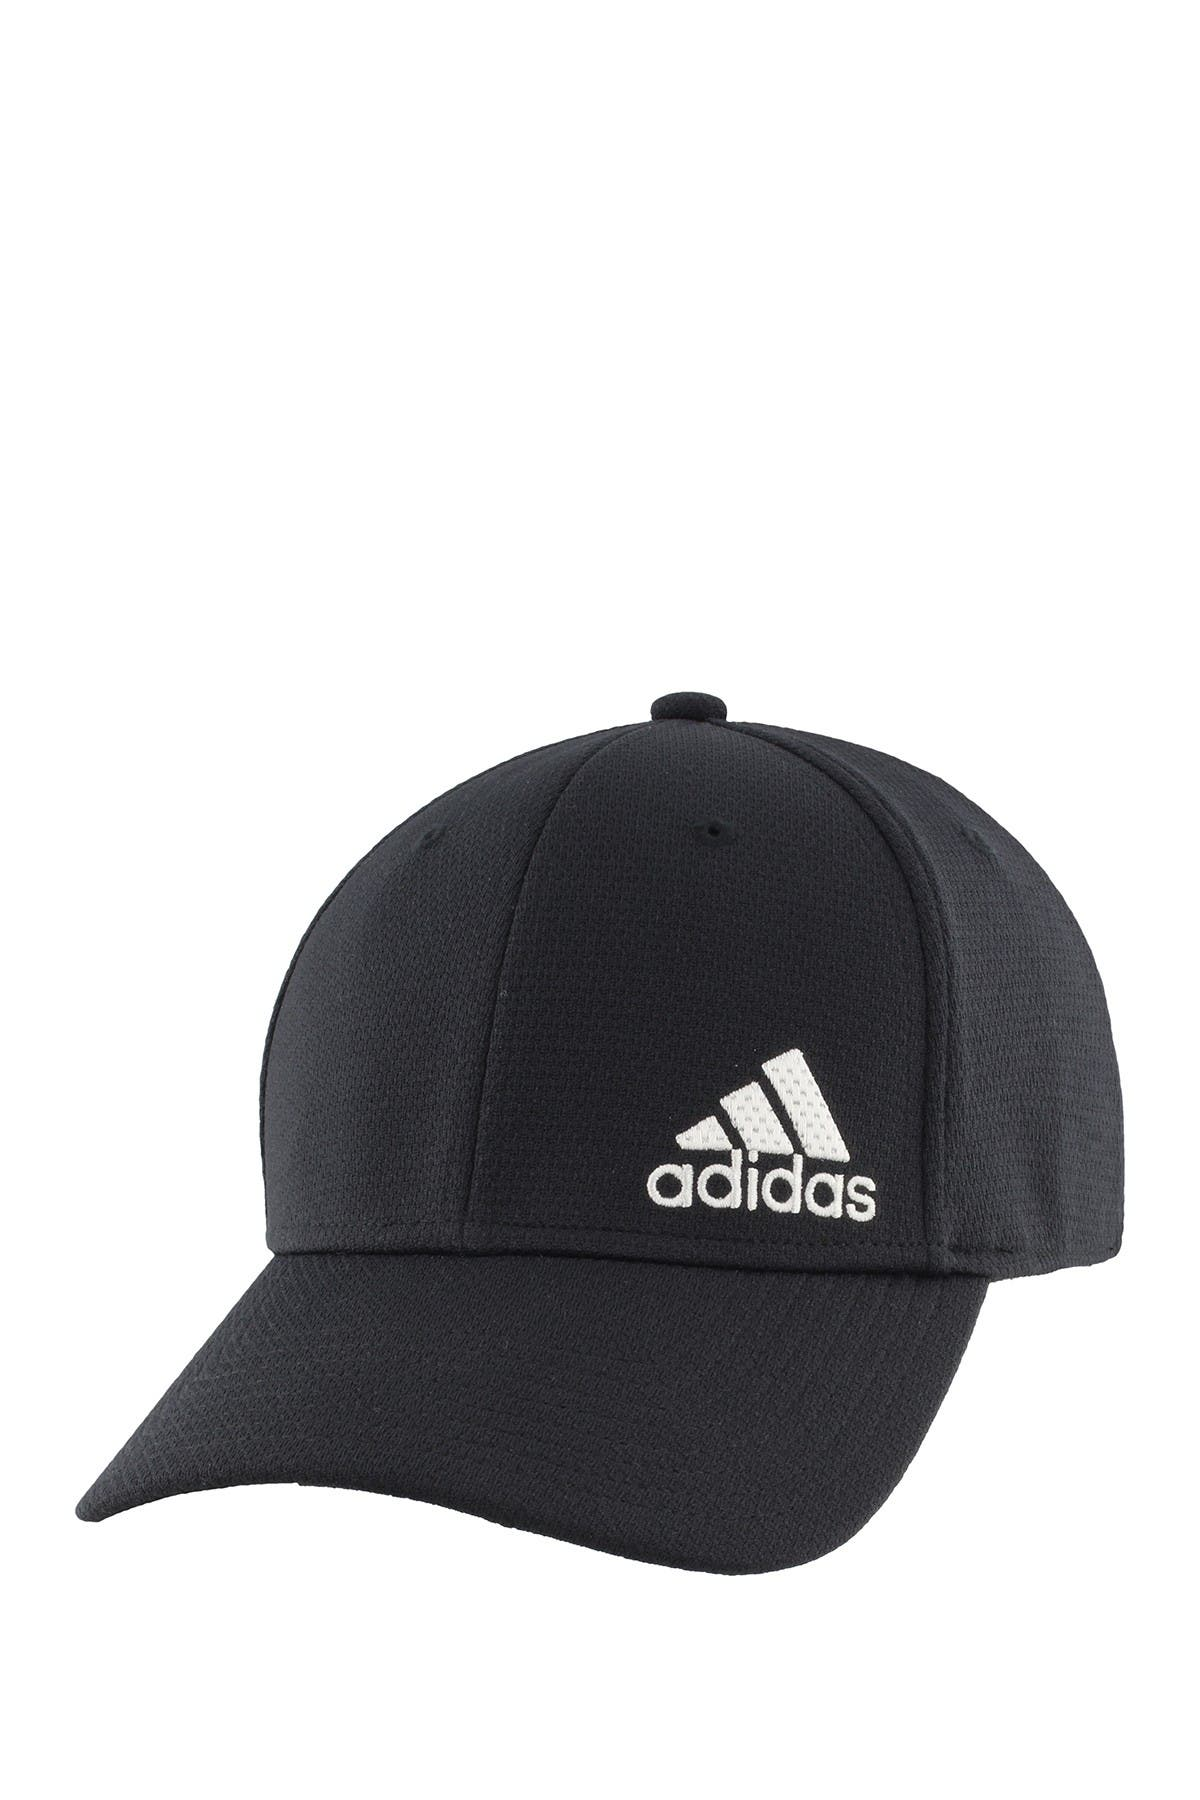 Image of adidas Release 2 Stretch-Fit Hat